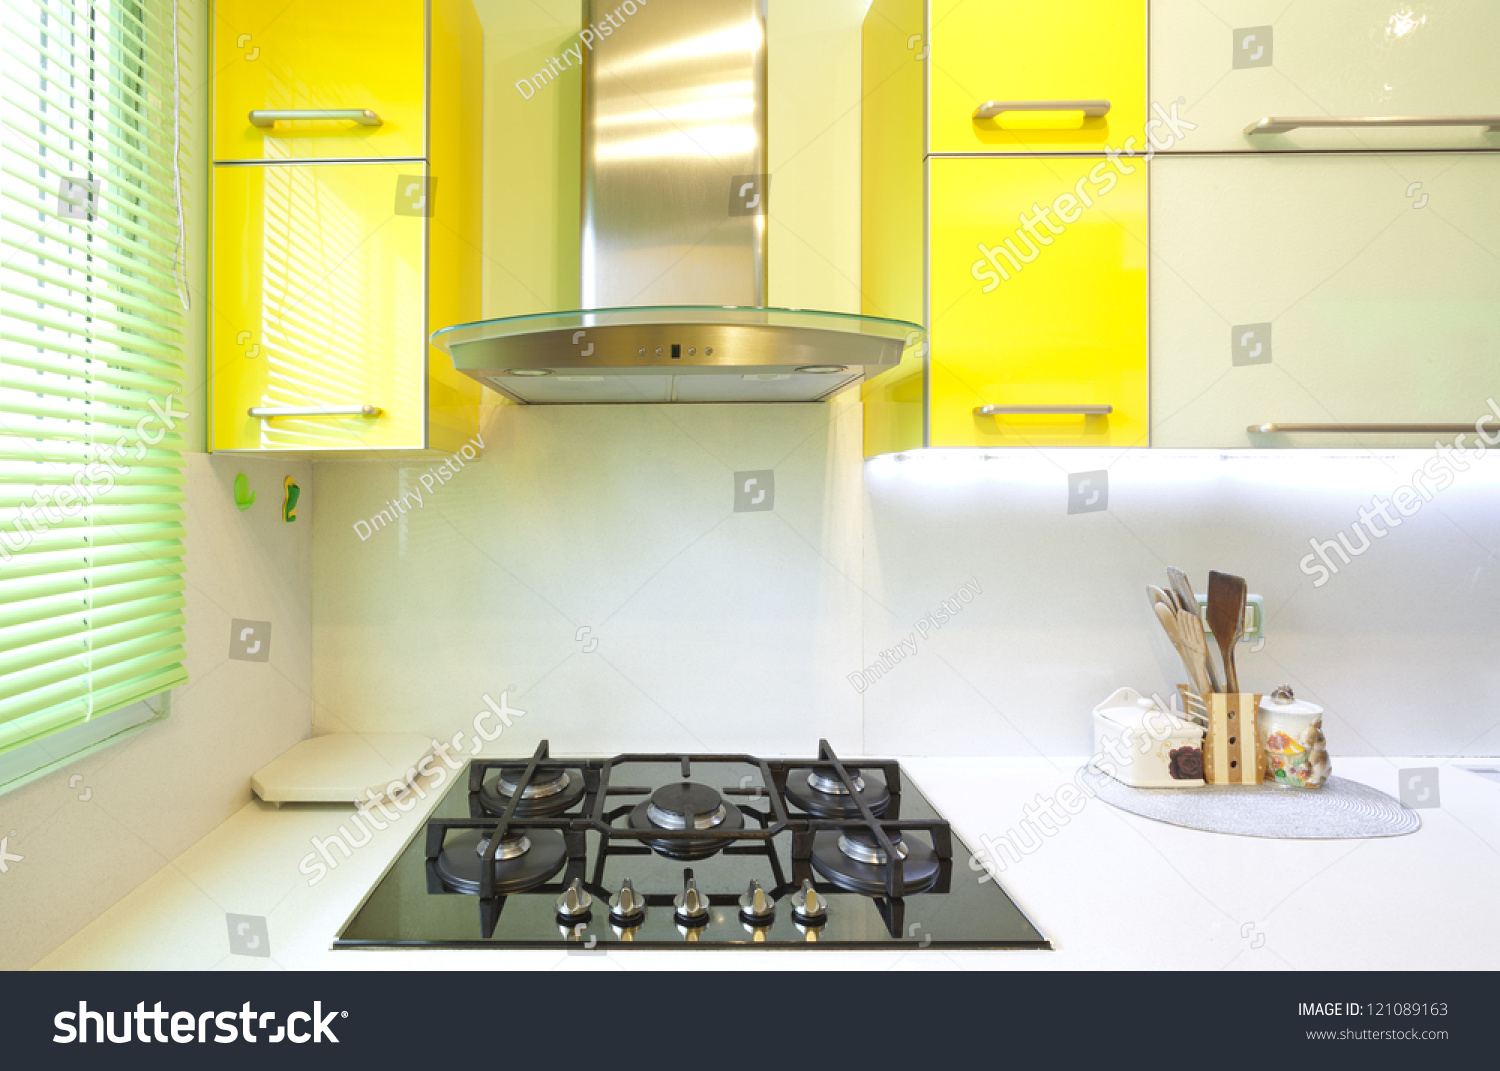 Modern Design Kitchen With Yellow And Green Elements Stock Photo 121089163 Shutterstock